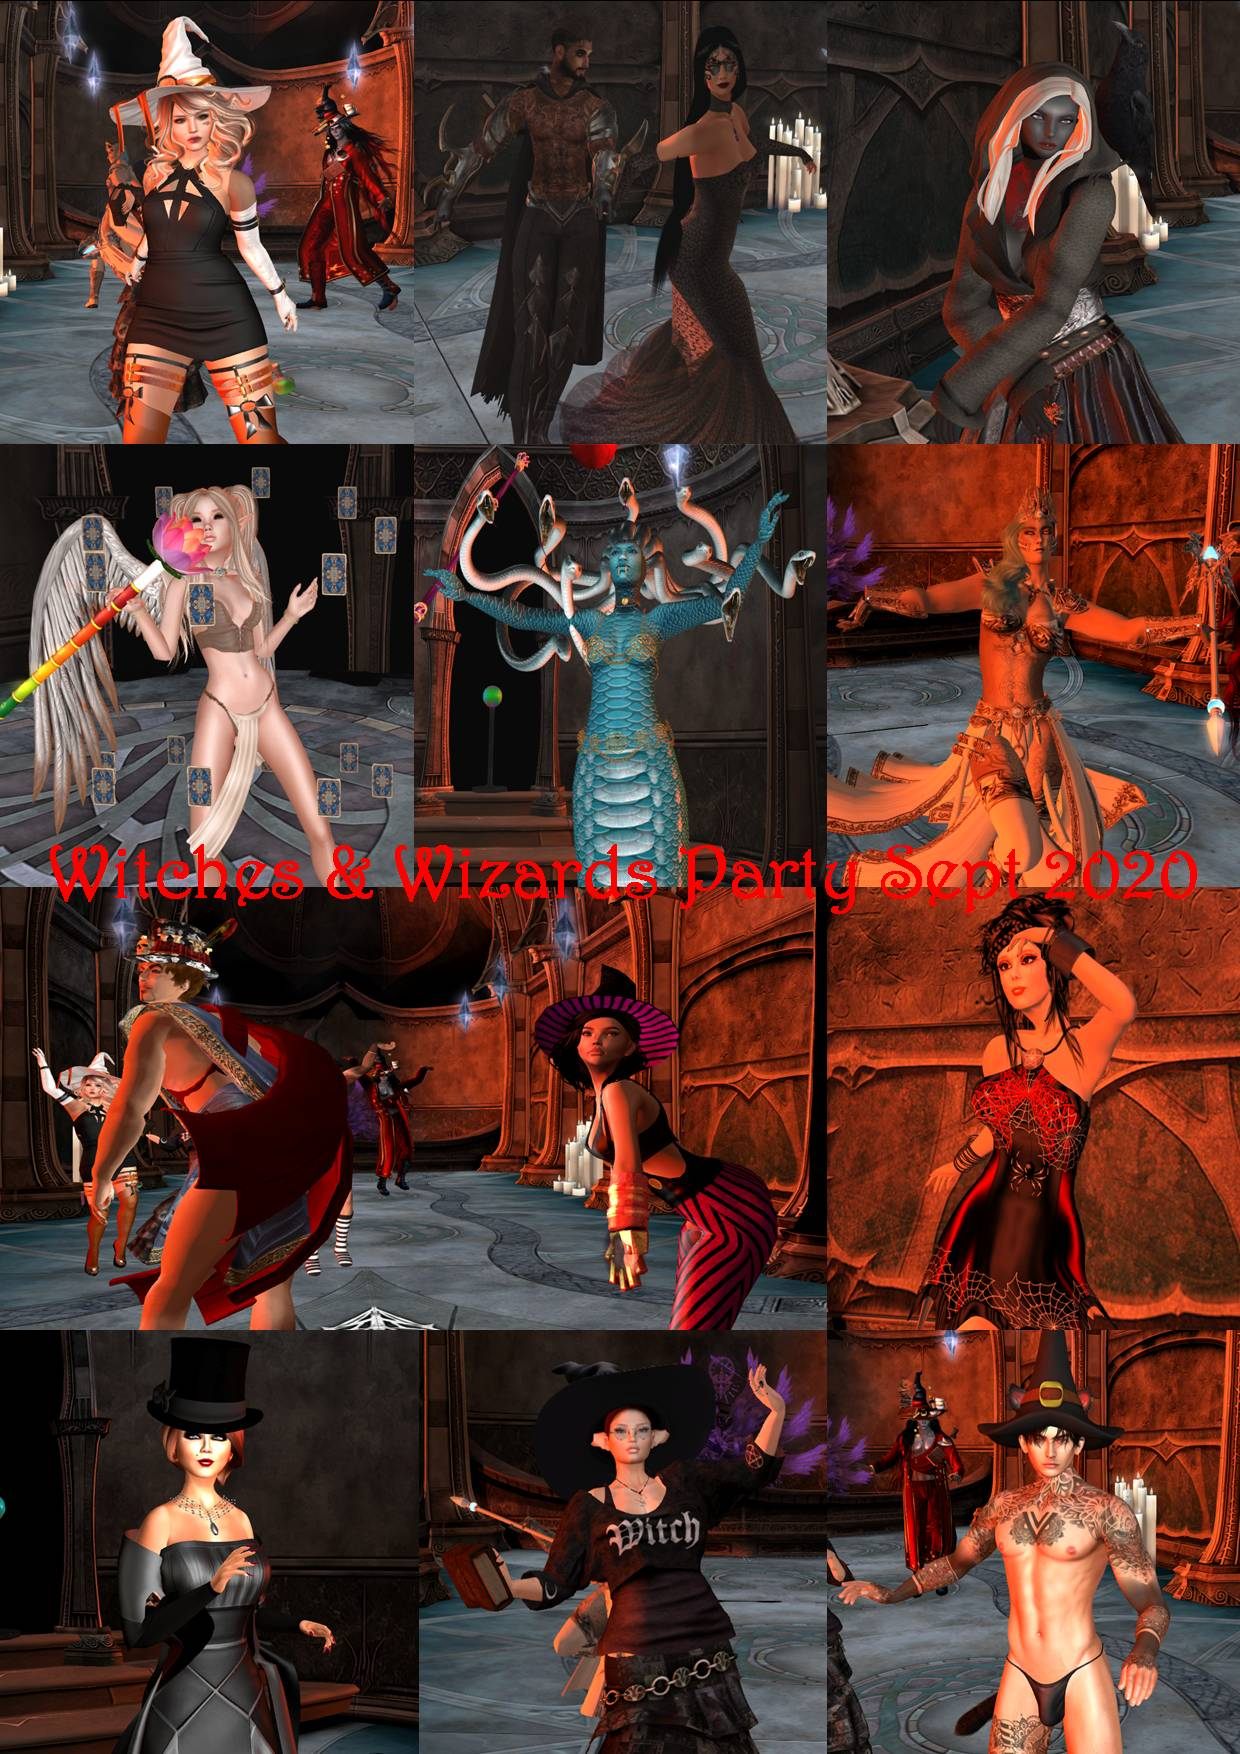 WITCHES & WIZARDS PARTY COLLAGE SEPT 2020 - 1